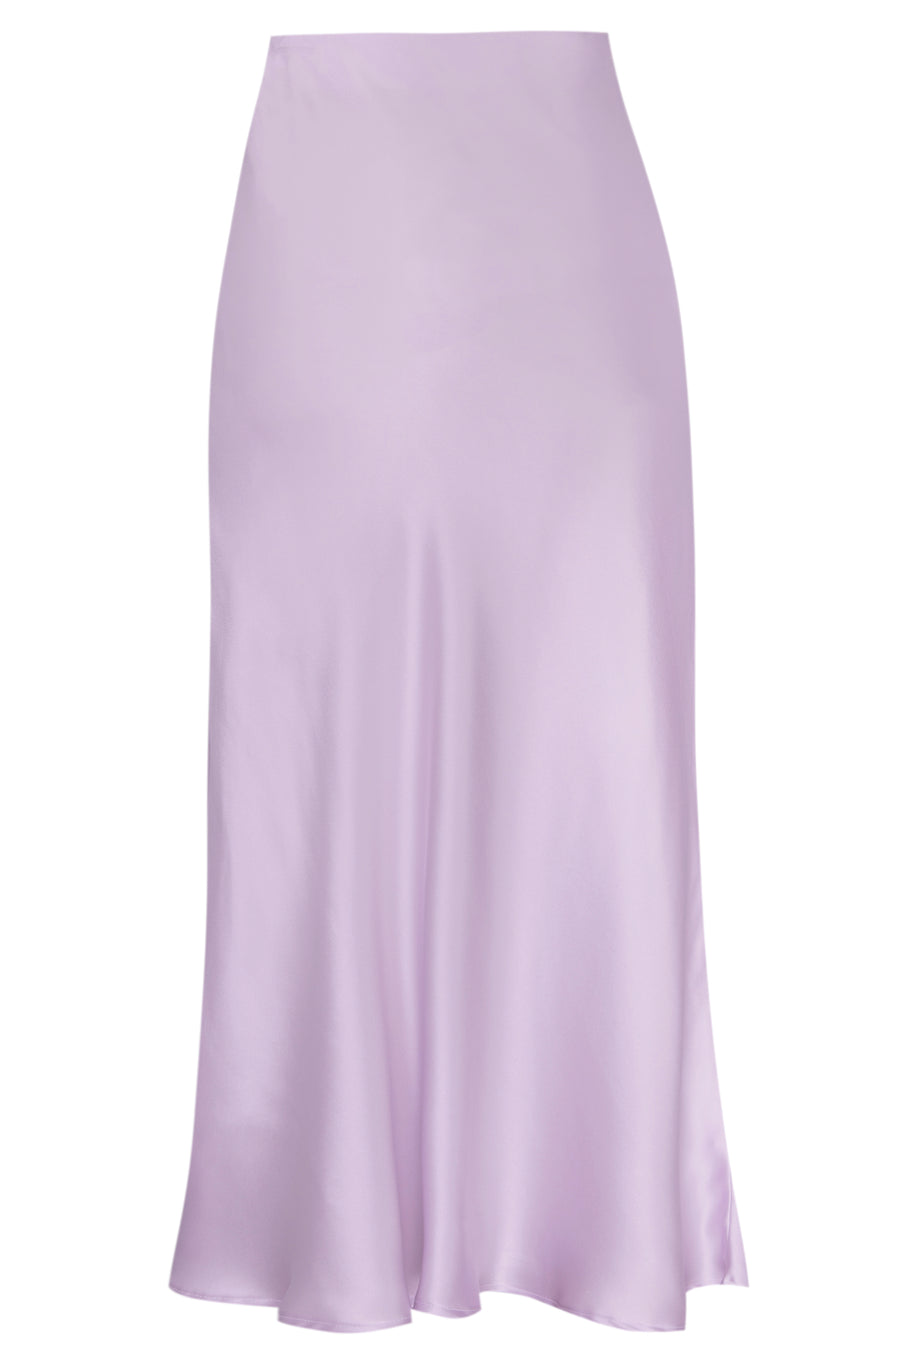 Silk Charmeuse 'Katie' Bias Skirt: Lilac